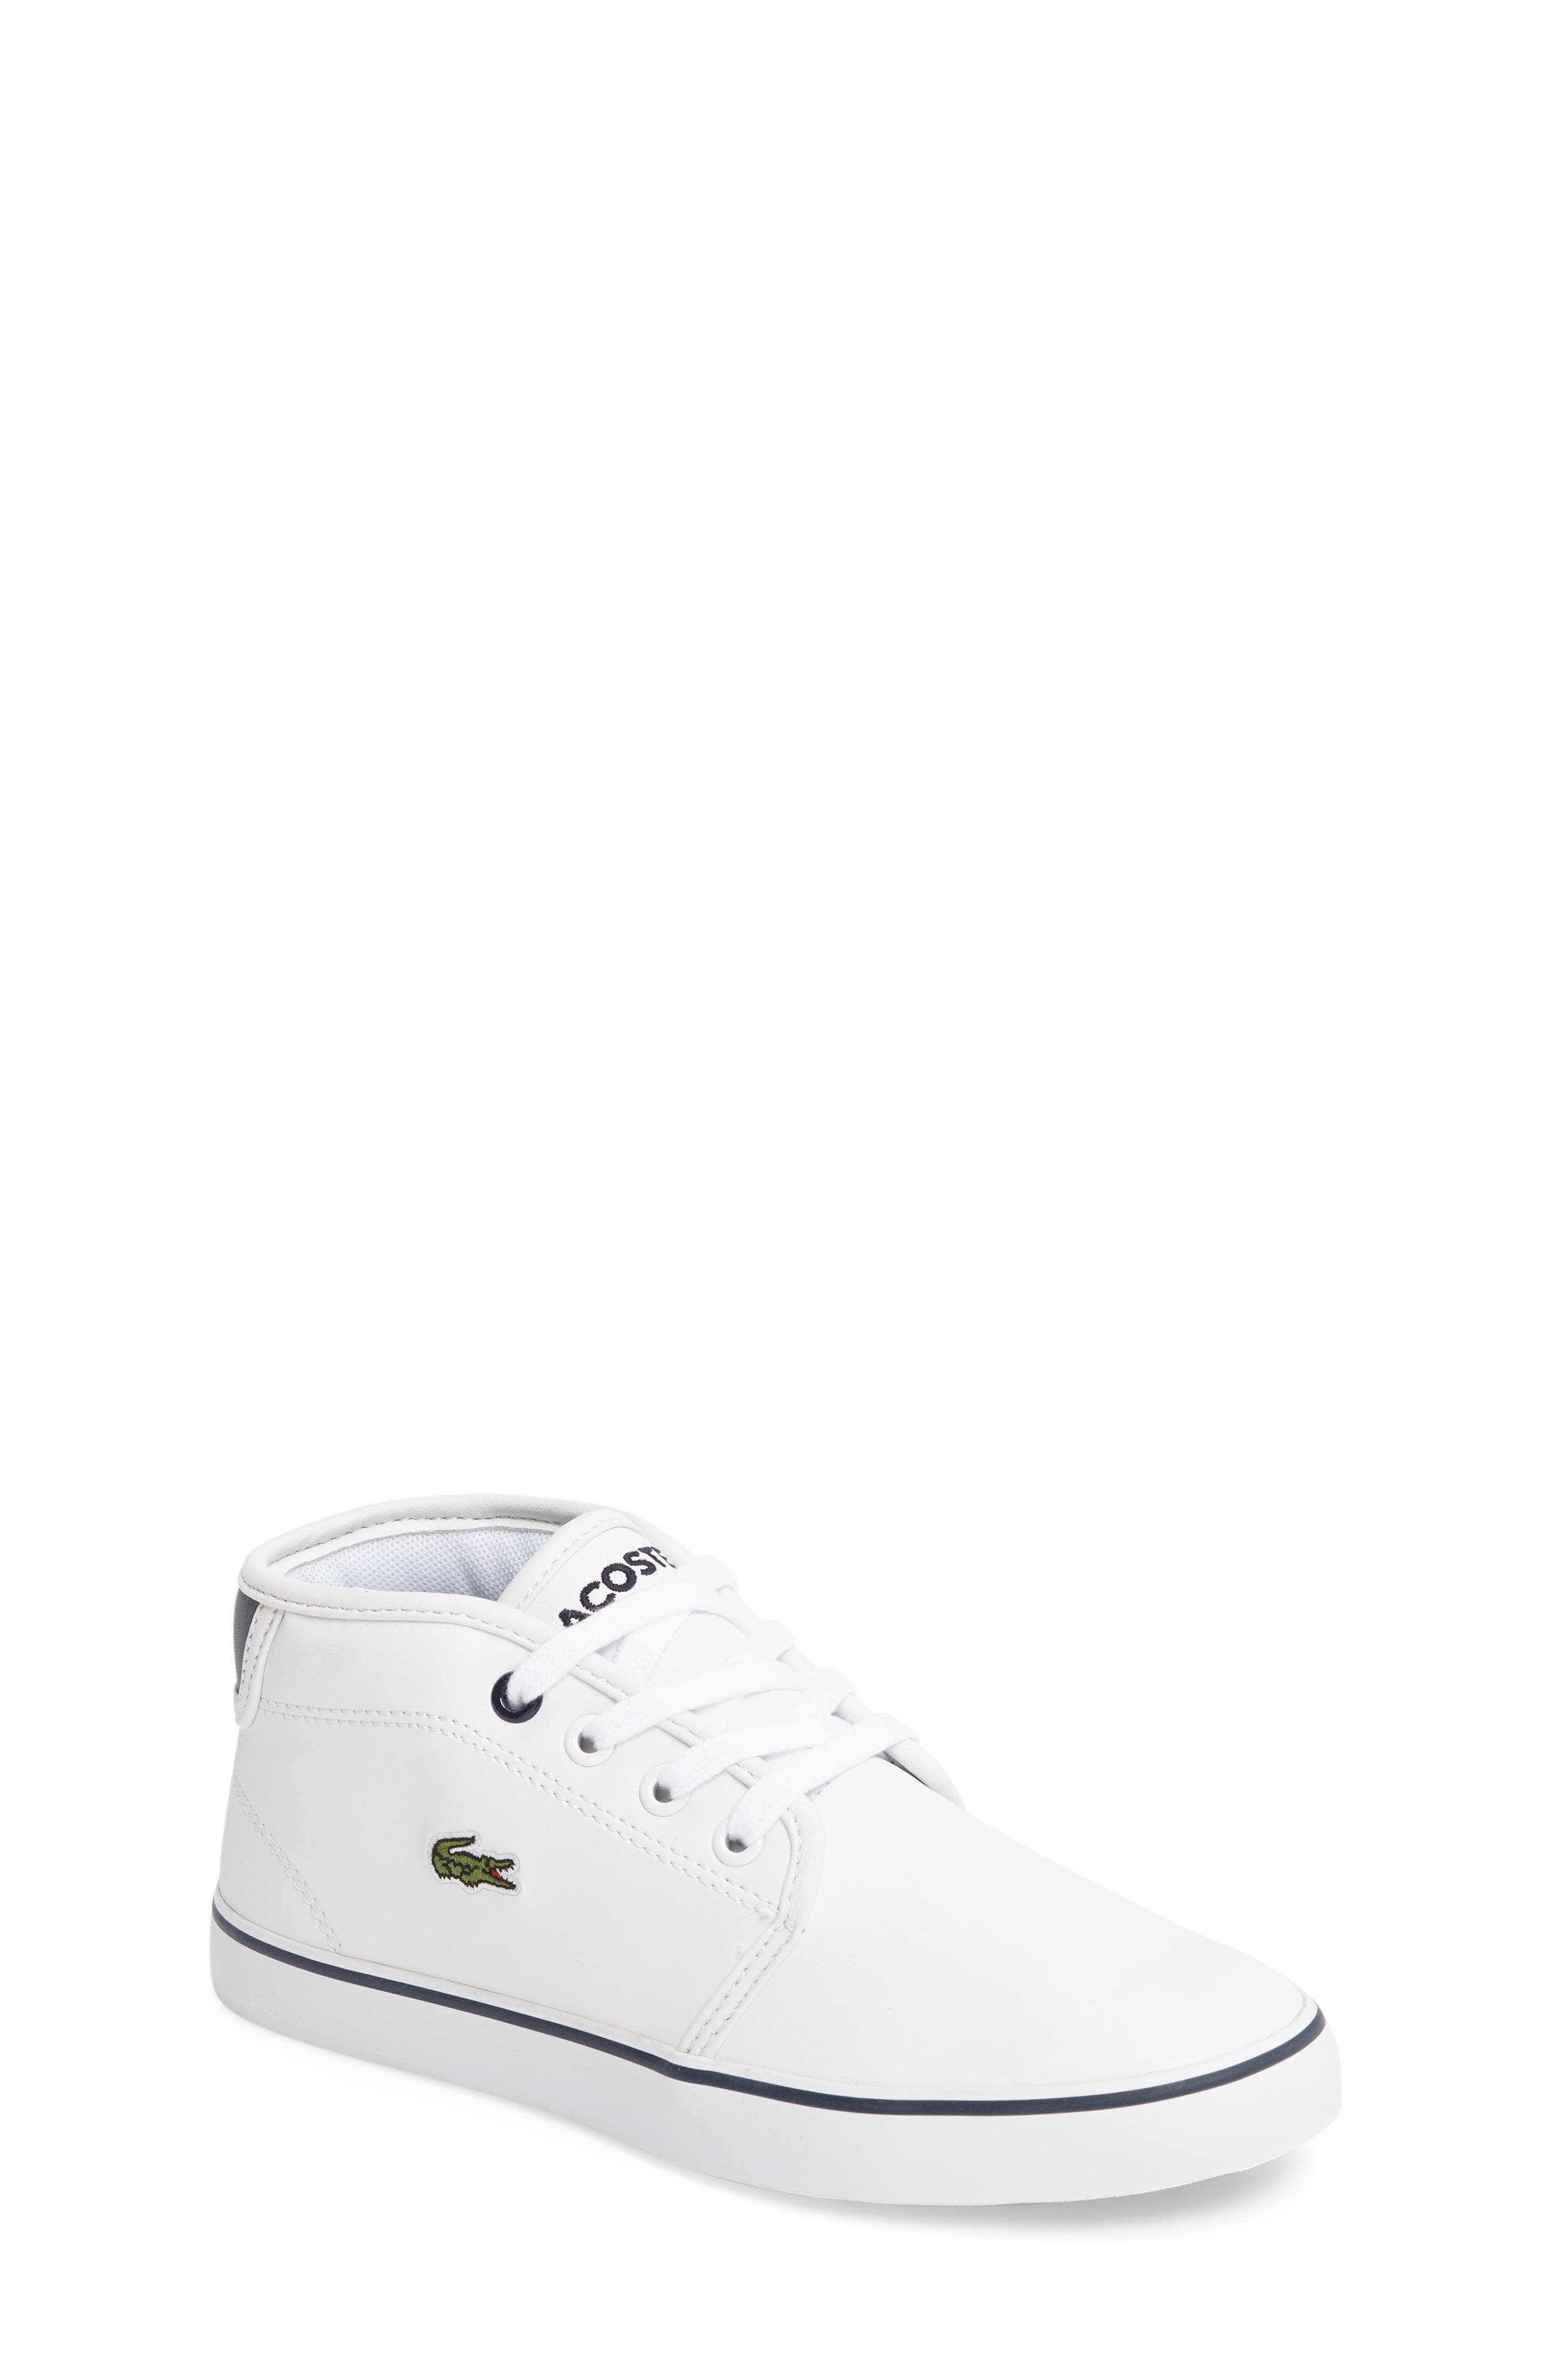 LACOSTE Ampthill High Top Sneaker